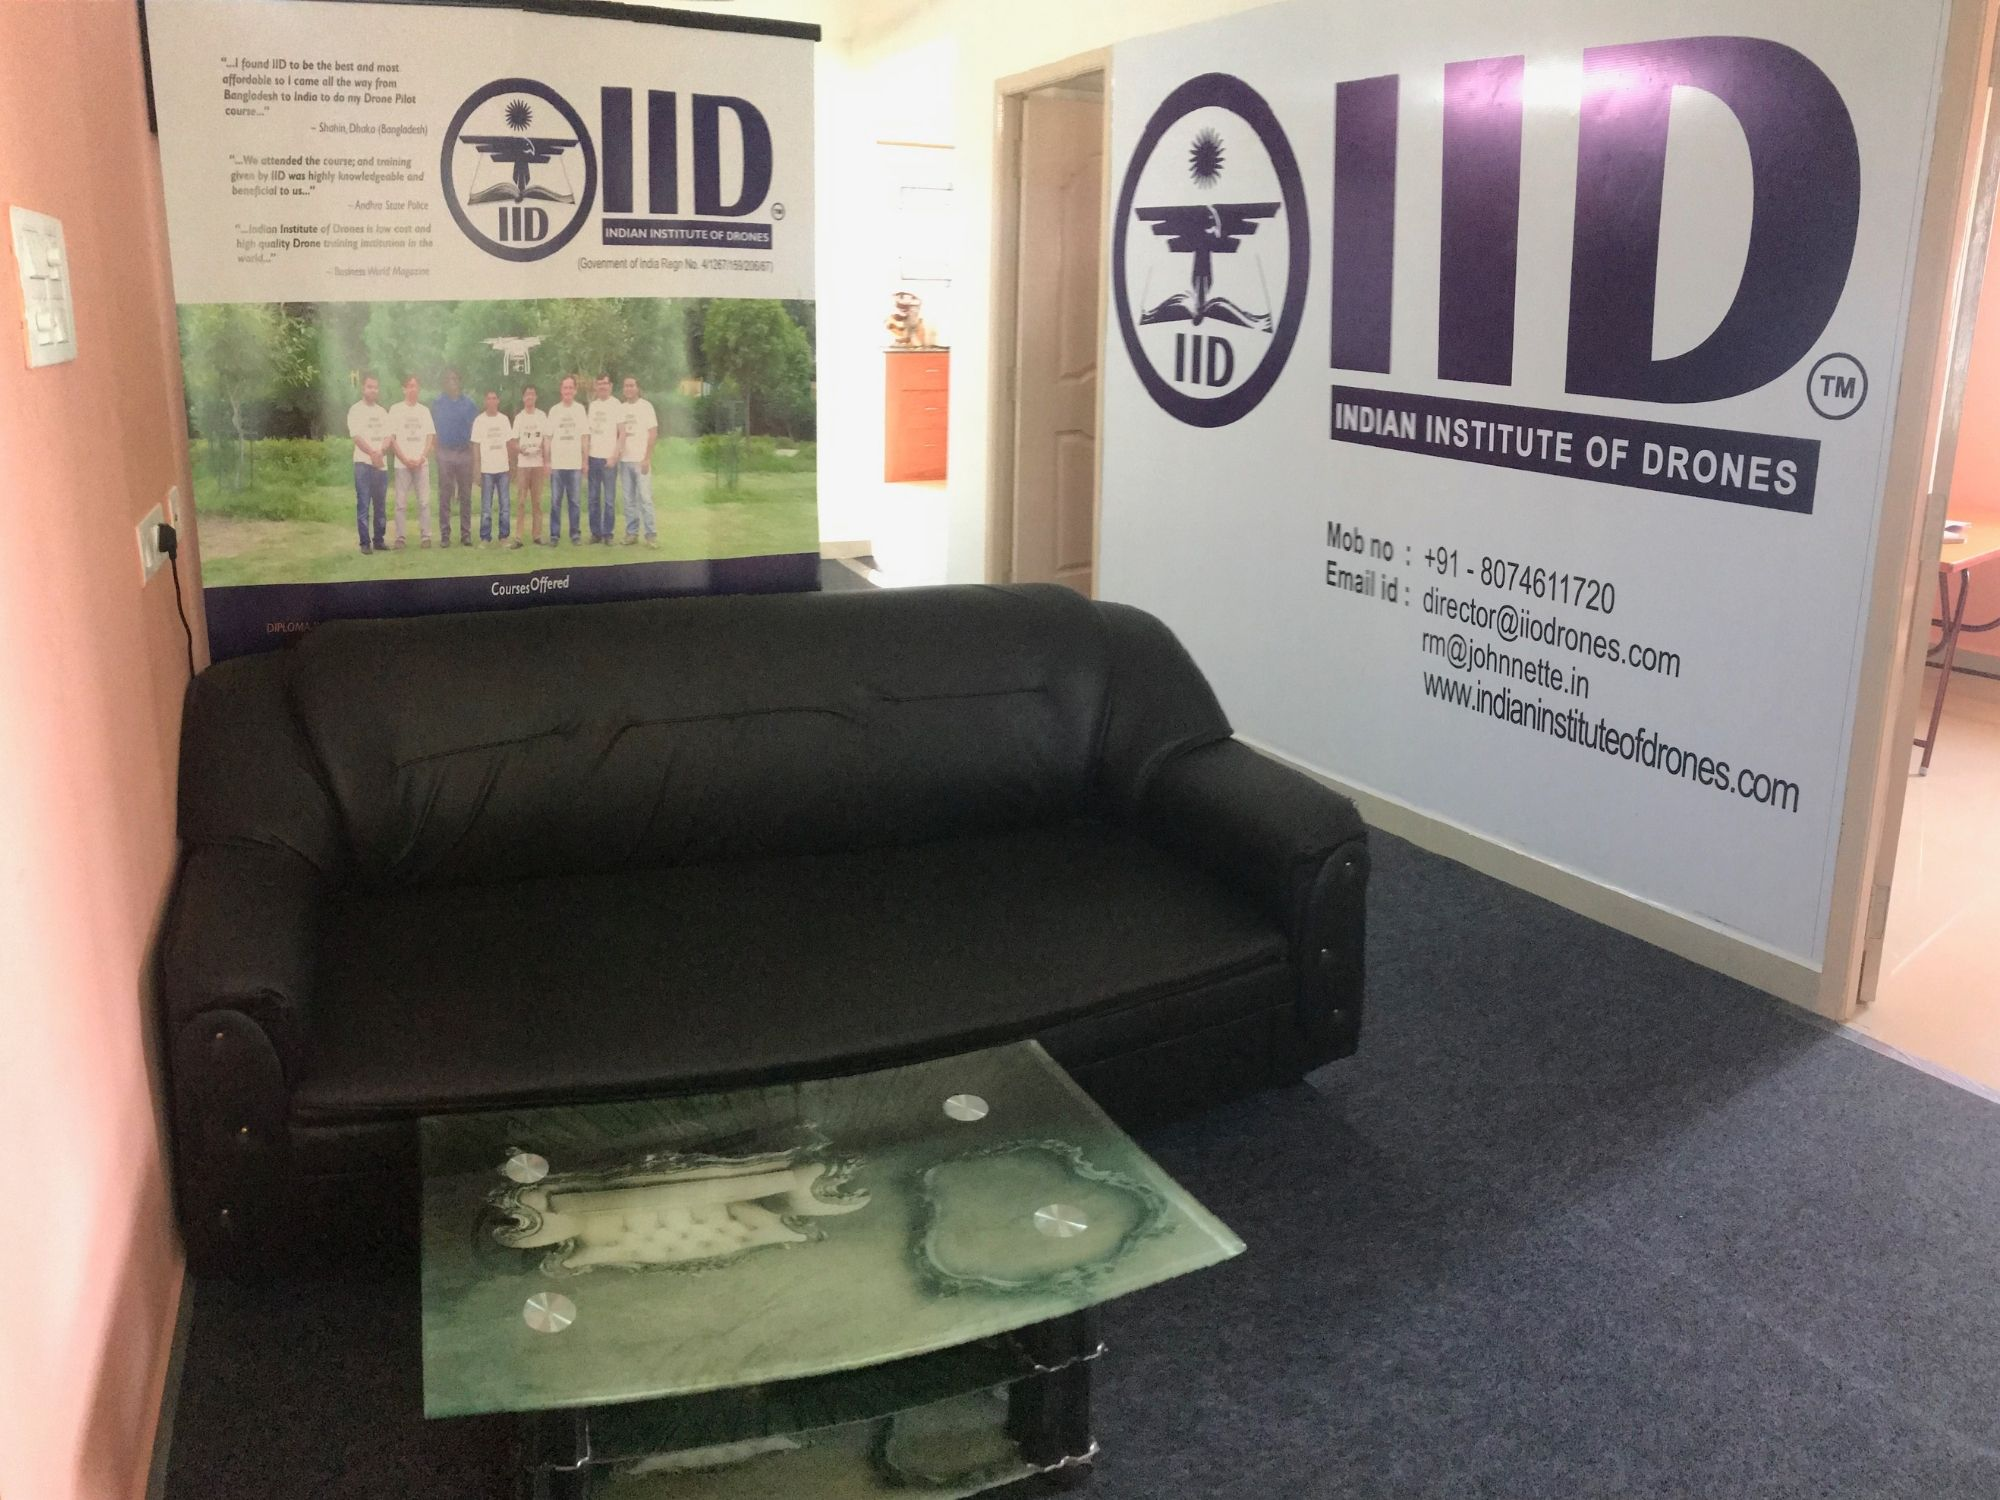 IID Centre in Chennai